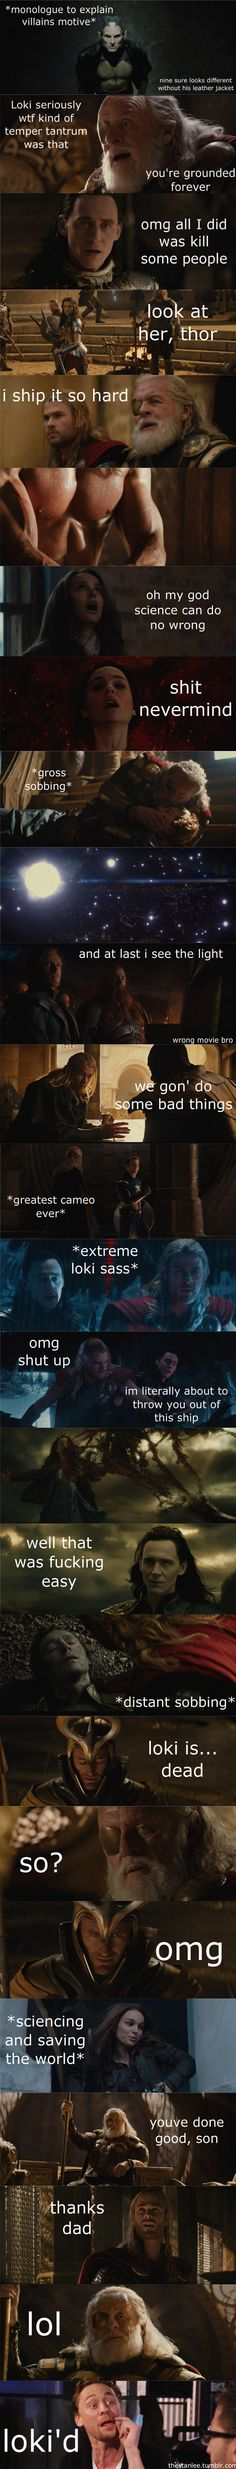 Marvel in a Nutshell: Thor: The Dark World